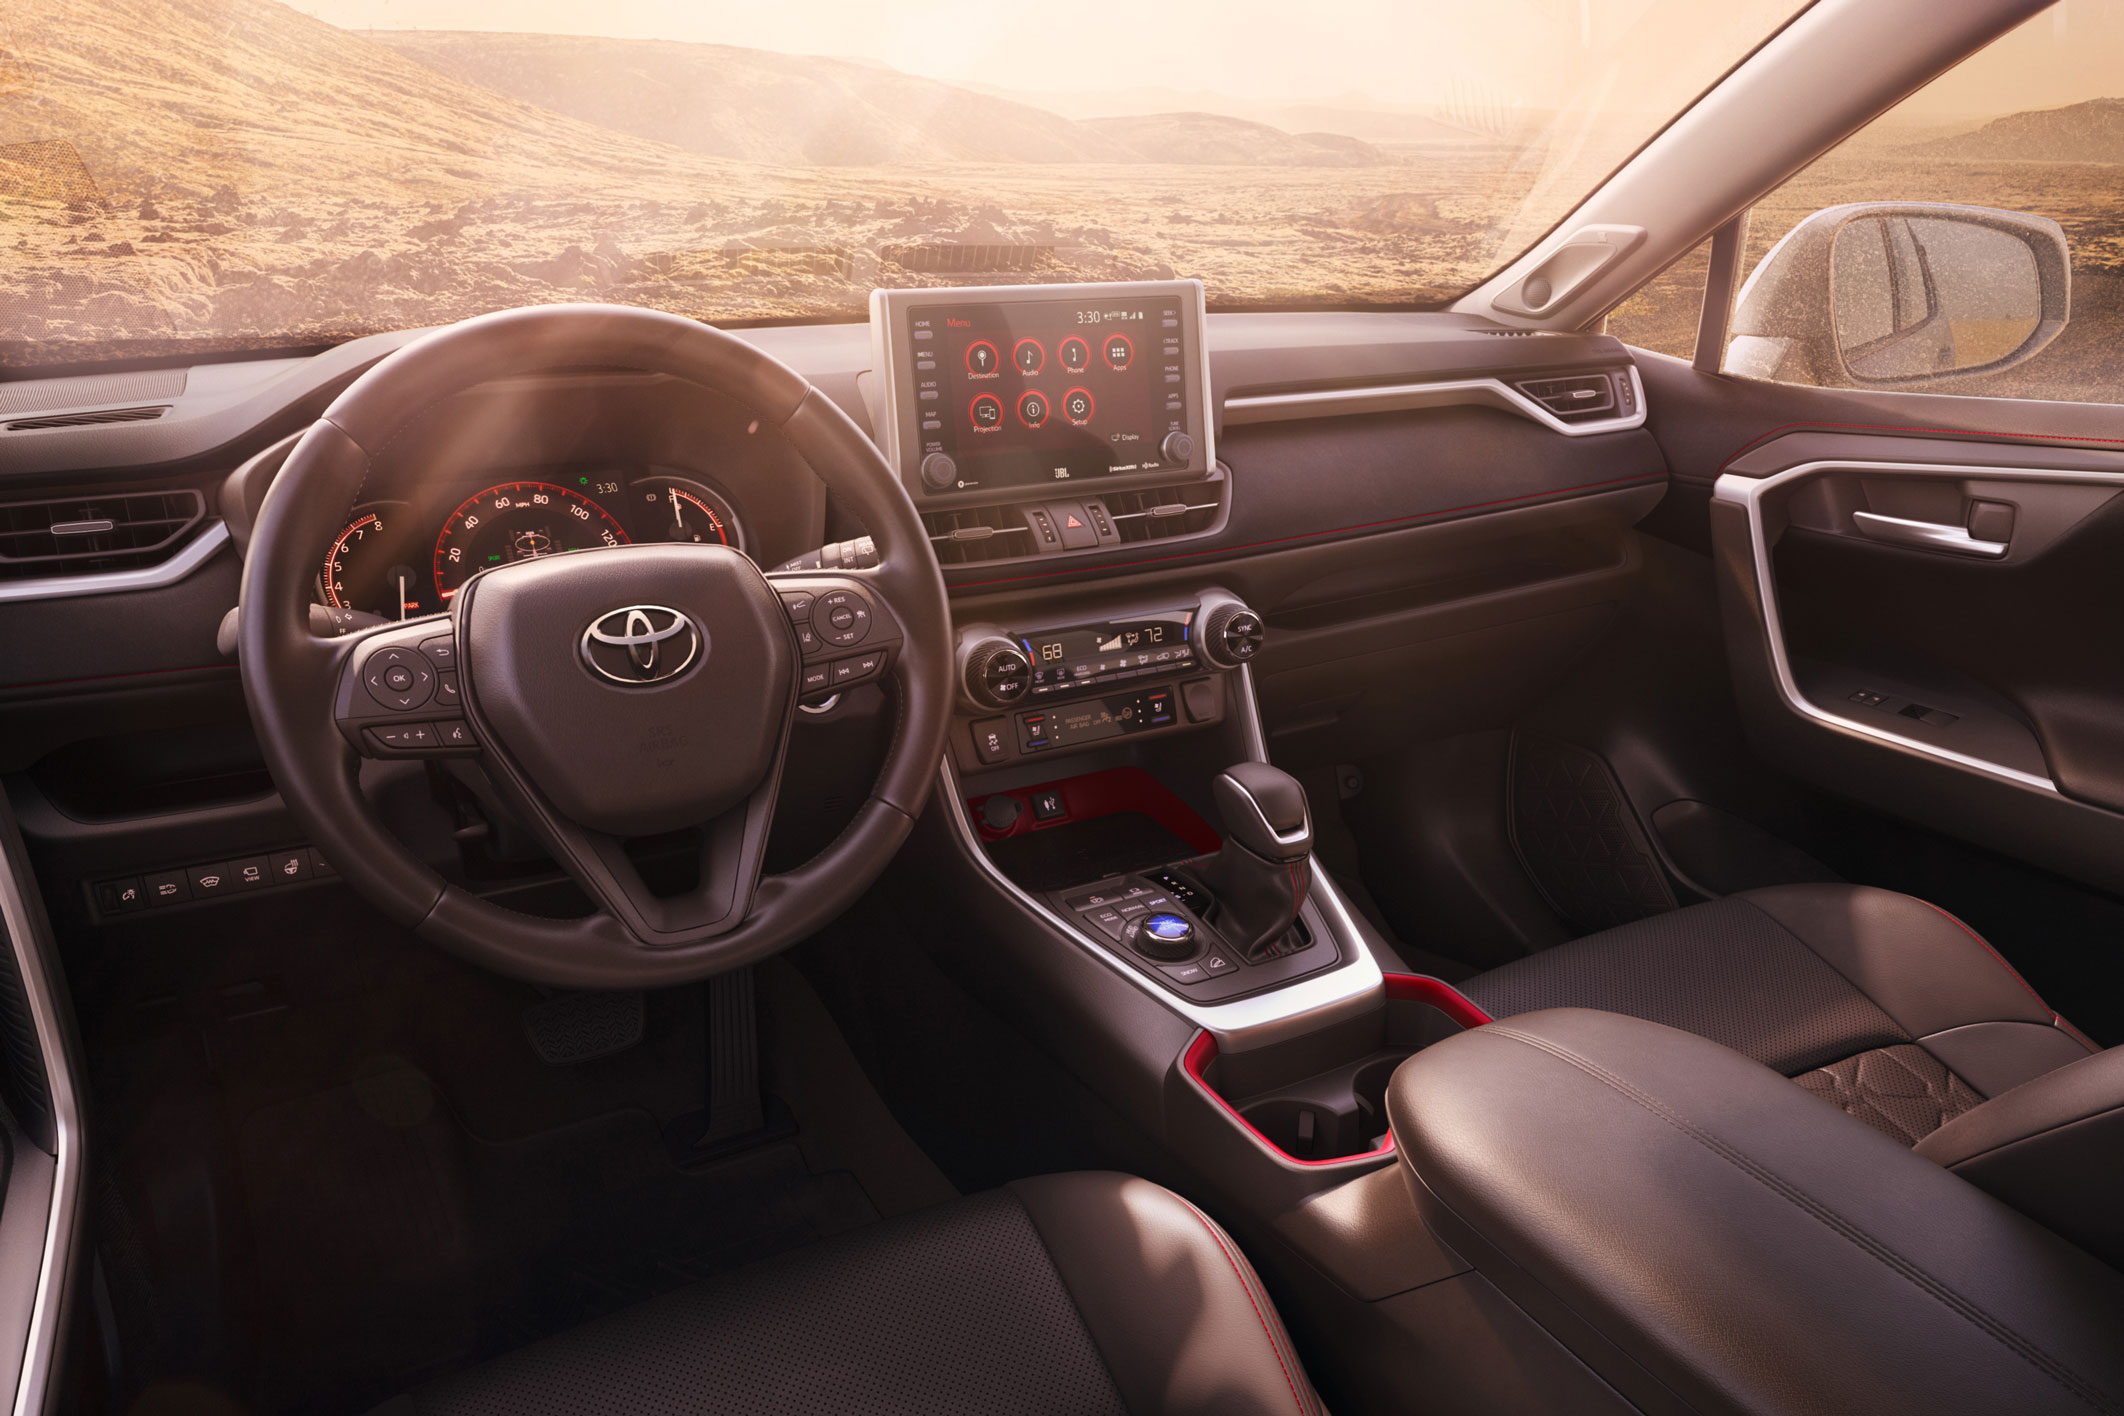 2020 Toyota RAV4 TRD Off-Road interior console and dashboard